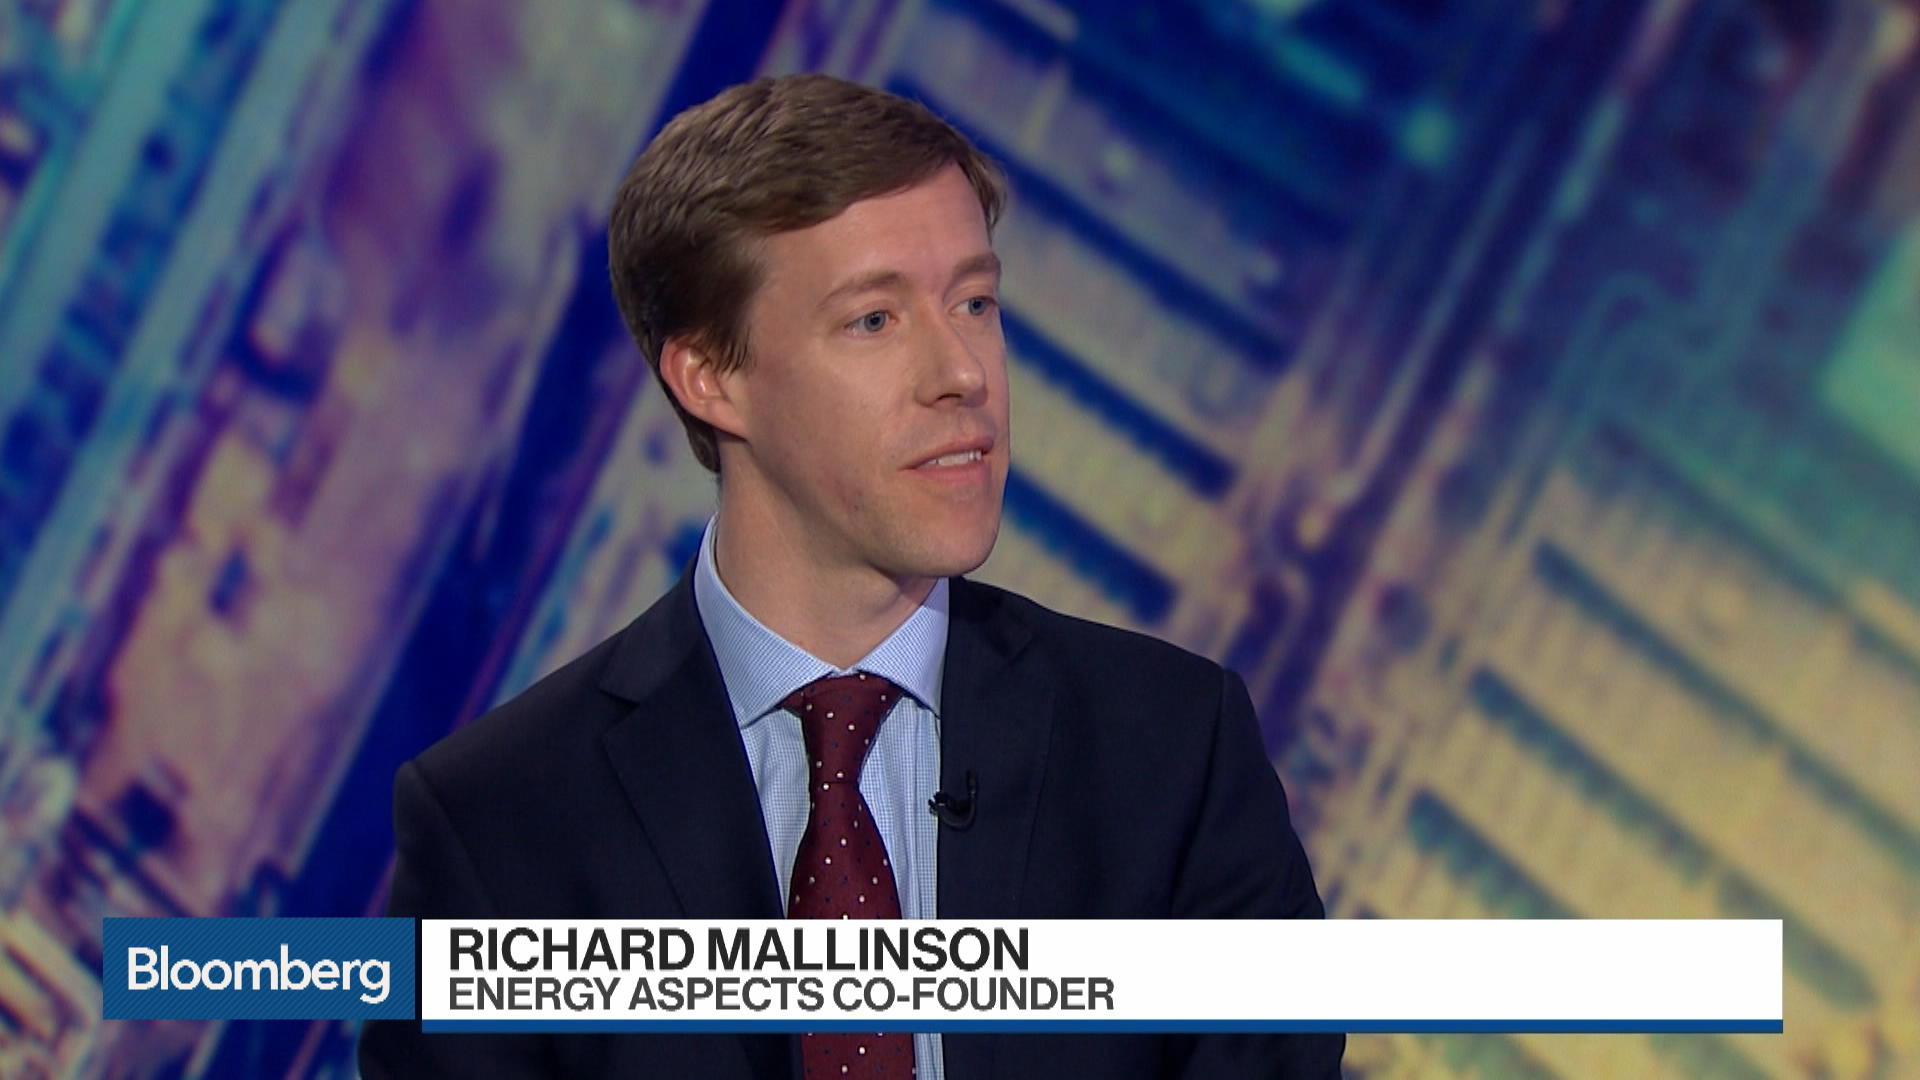 Oil's Drop in 2018 Still Haunts Investors, Energy Aspects' Mallinson Says